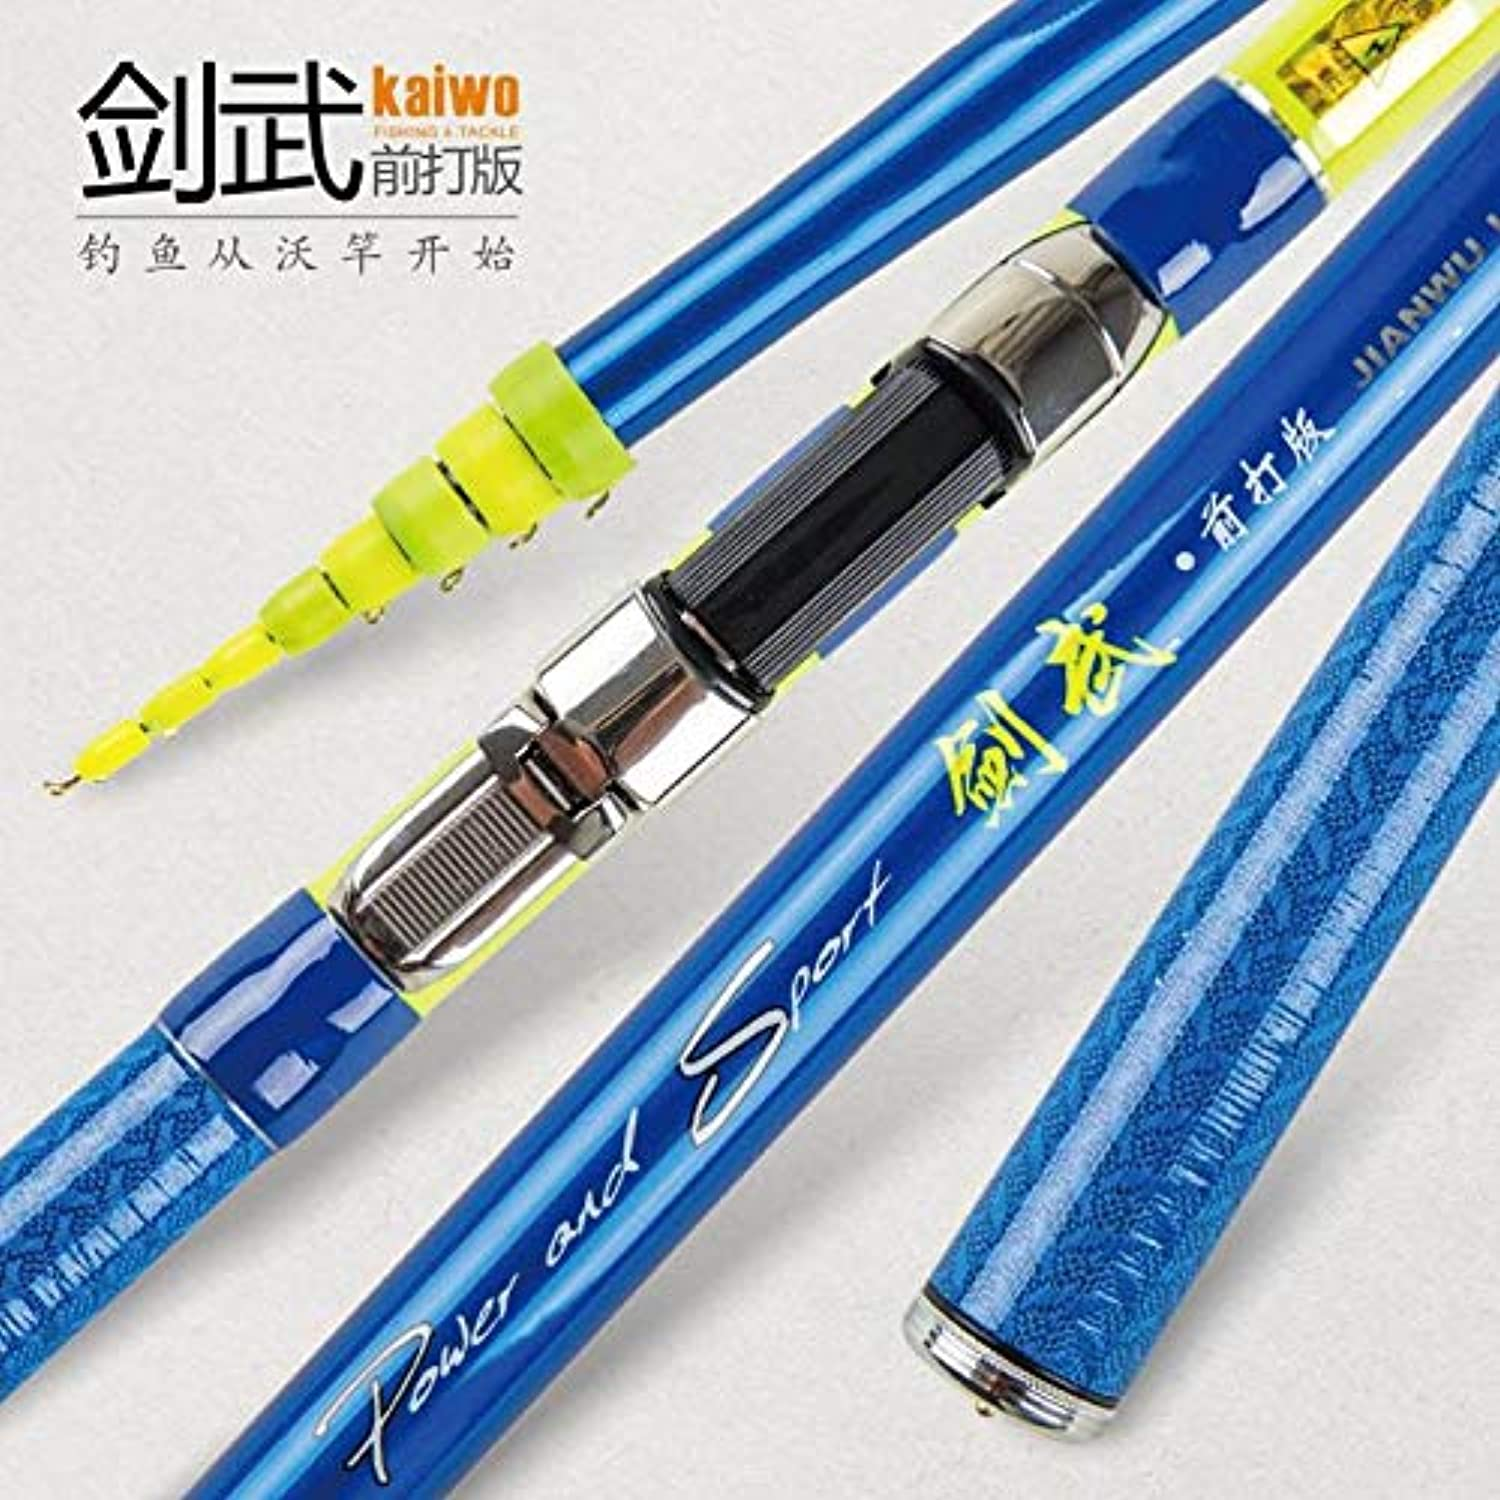 Kaiwo Seiko Swords Before The Game Before The Fight, do not Cut The line 1M Long Positioning Fishing Rod Super Hard Super Light Throwing